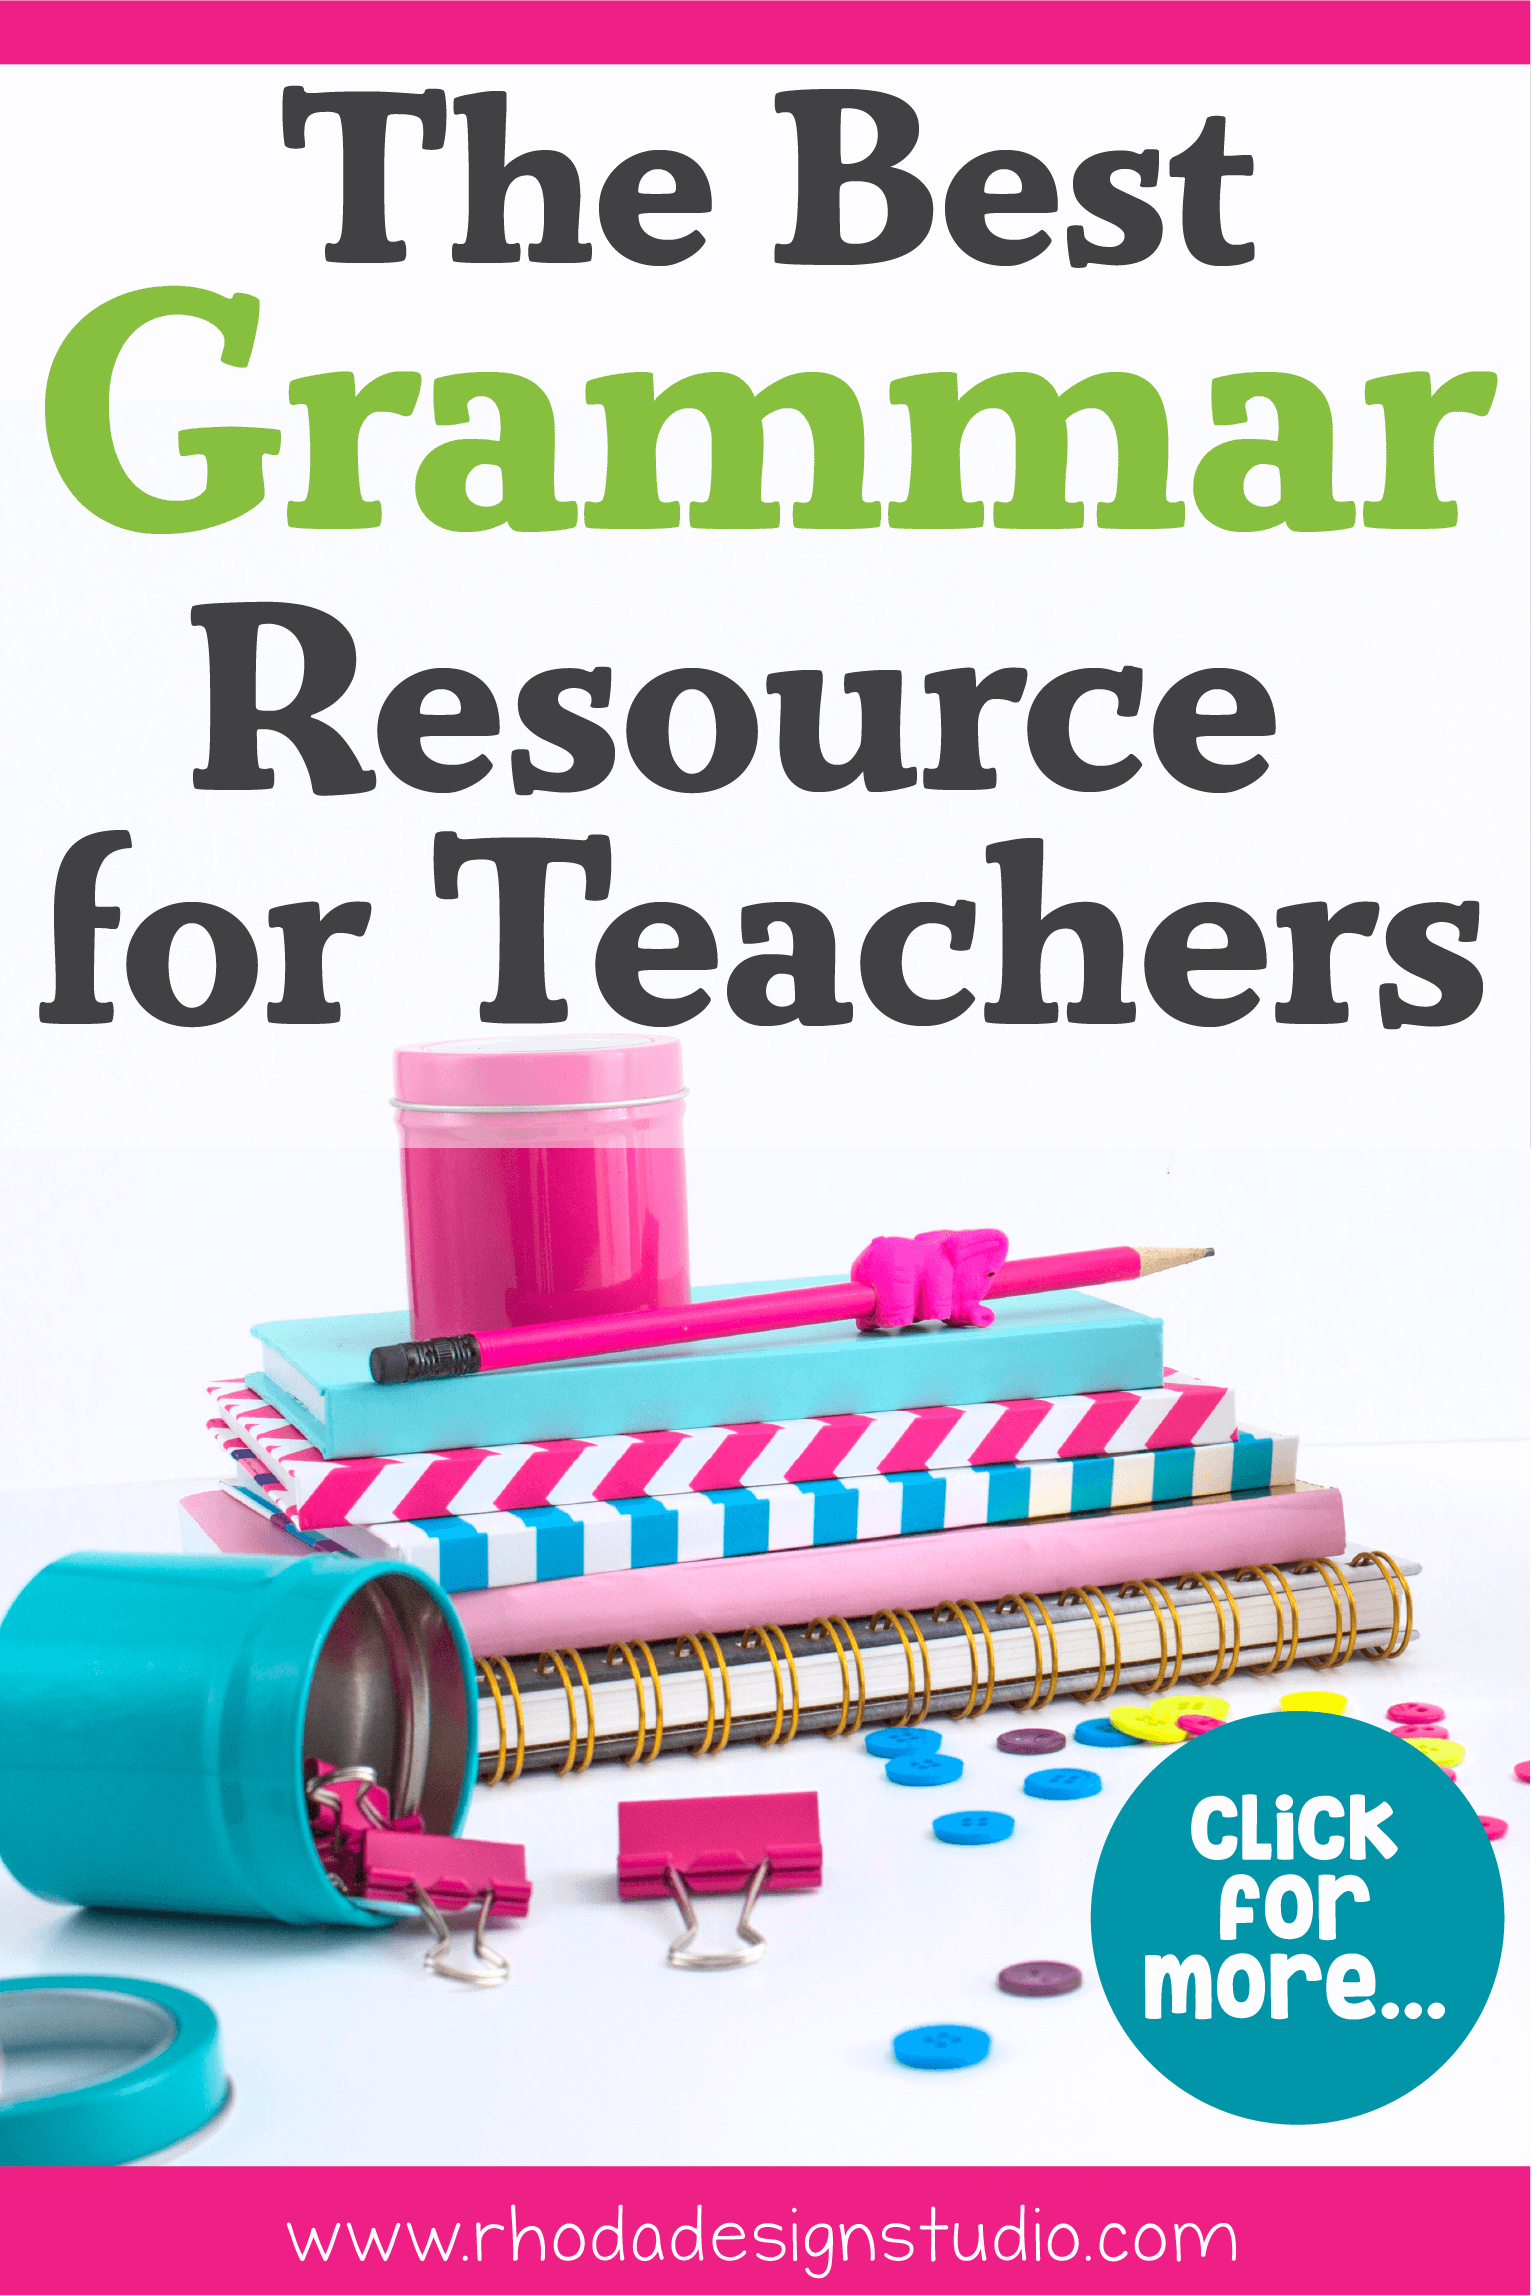 What is the best online grammar resource for teachers who create blog posts, online teaching materials, and want a grammar resource for their classrooms? Read the post to learn more.